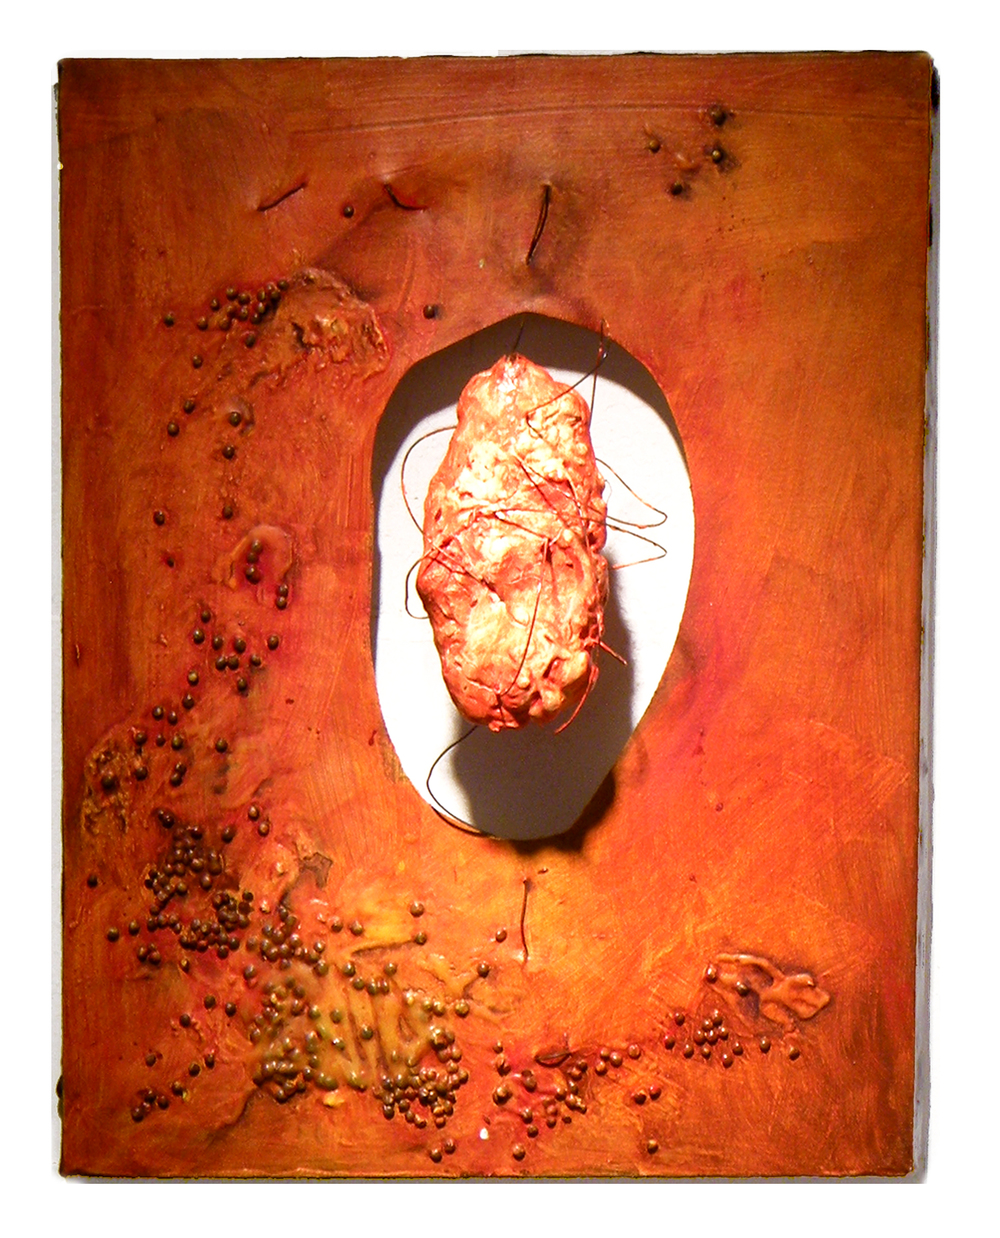 "Send Help  2009  Canvas, foam, wire, lentils, acrylic and oil paint  18"" x 24"""